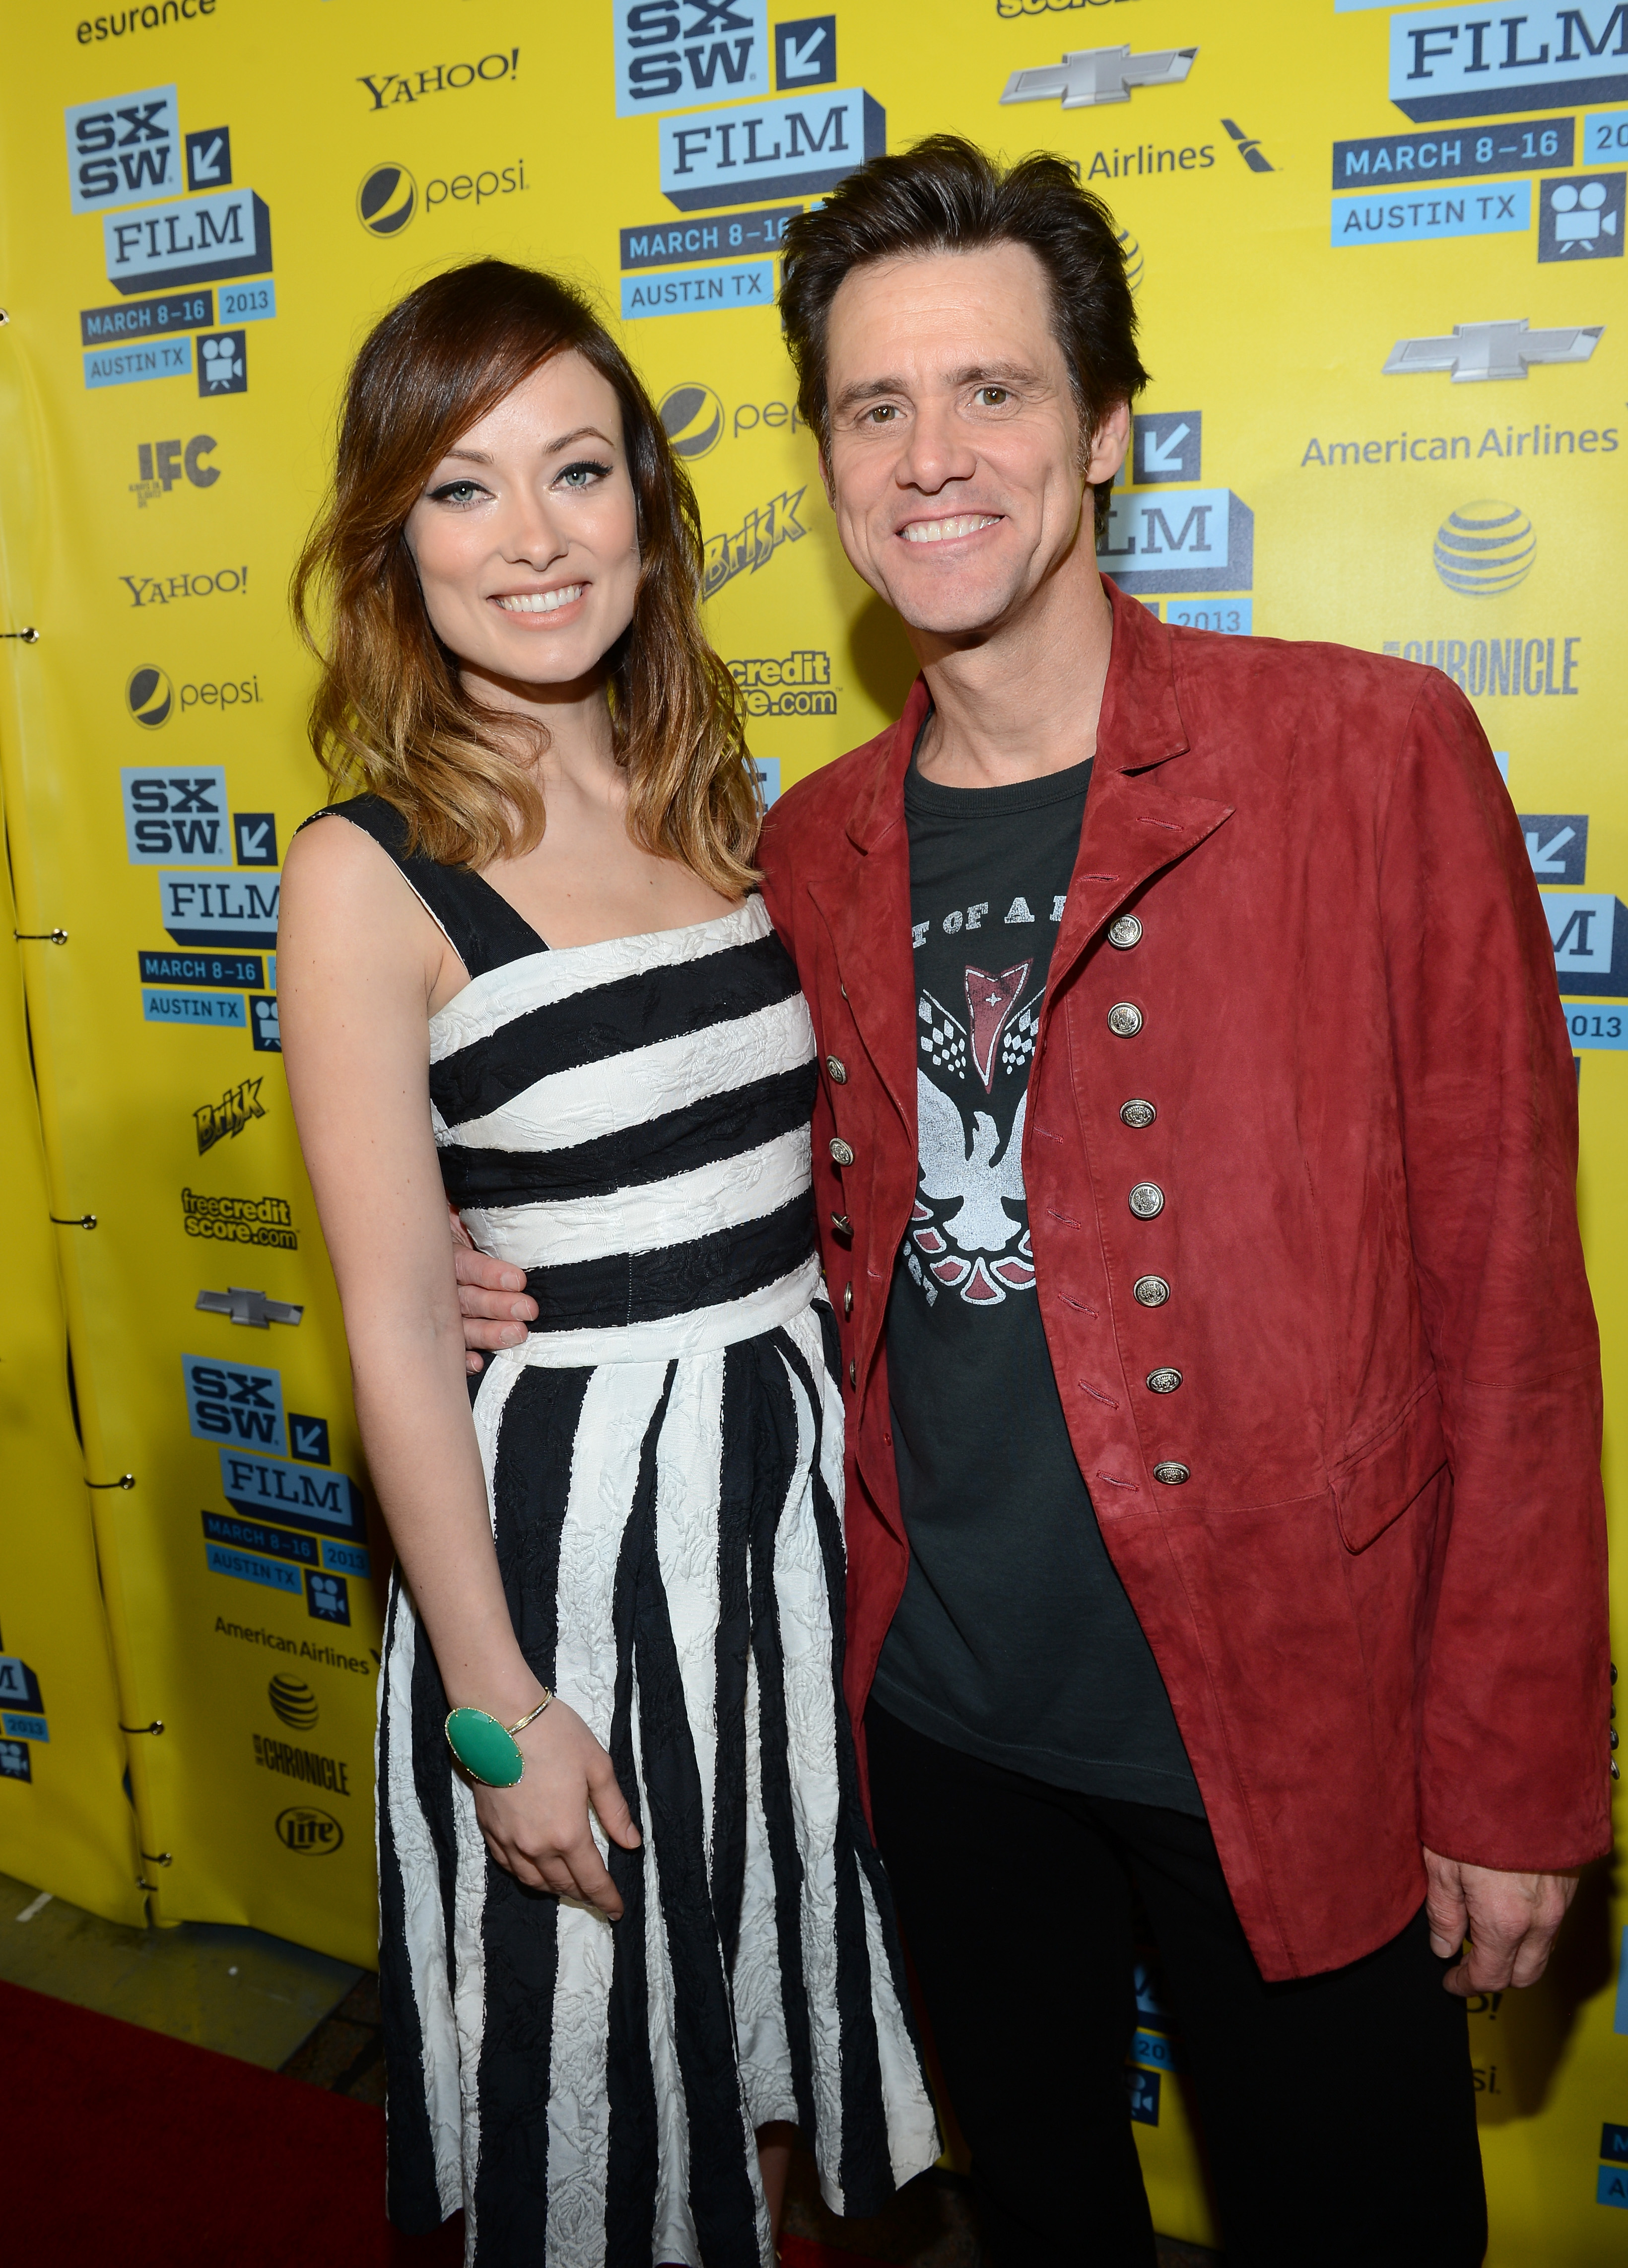 Olivia Wilde and Jim Carrey linked up at SXSW.